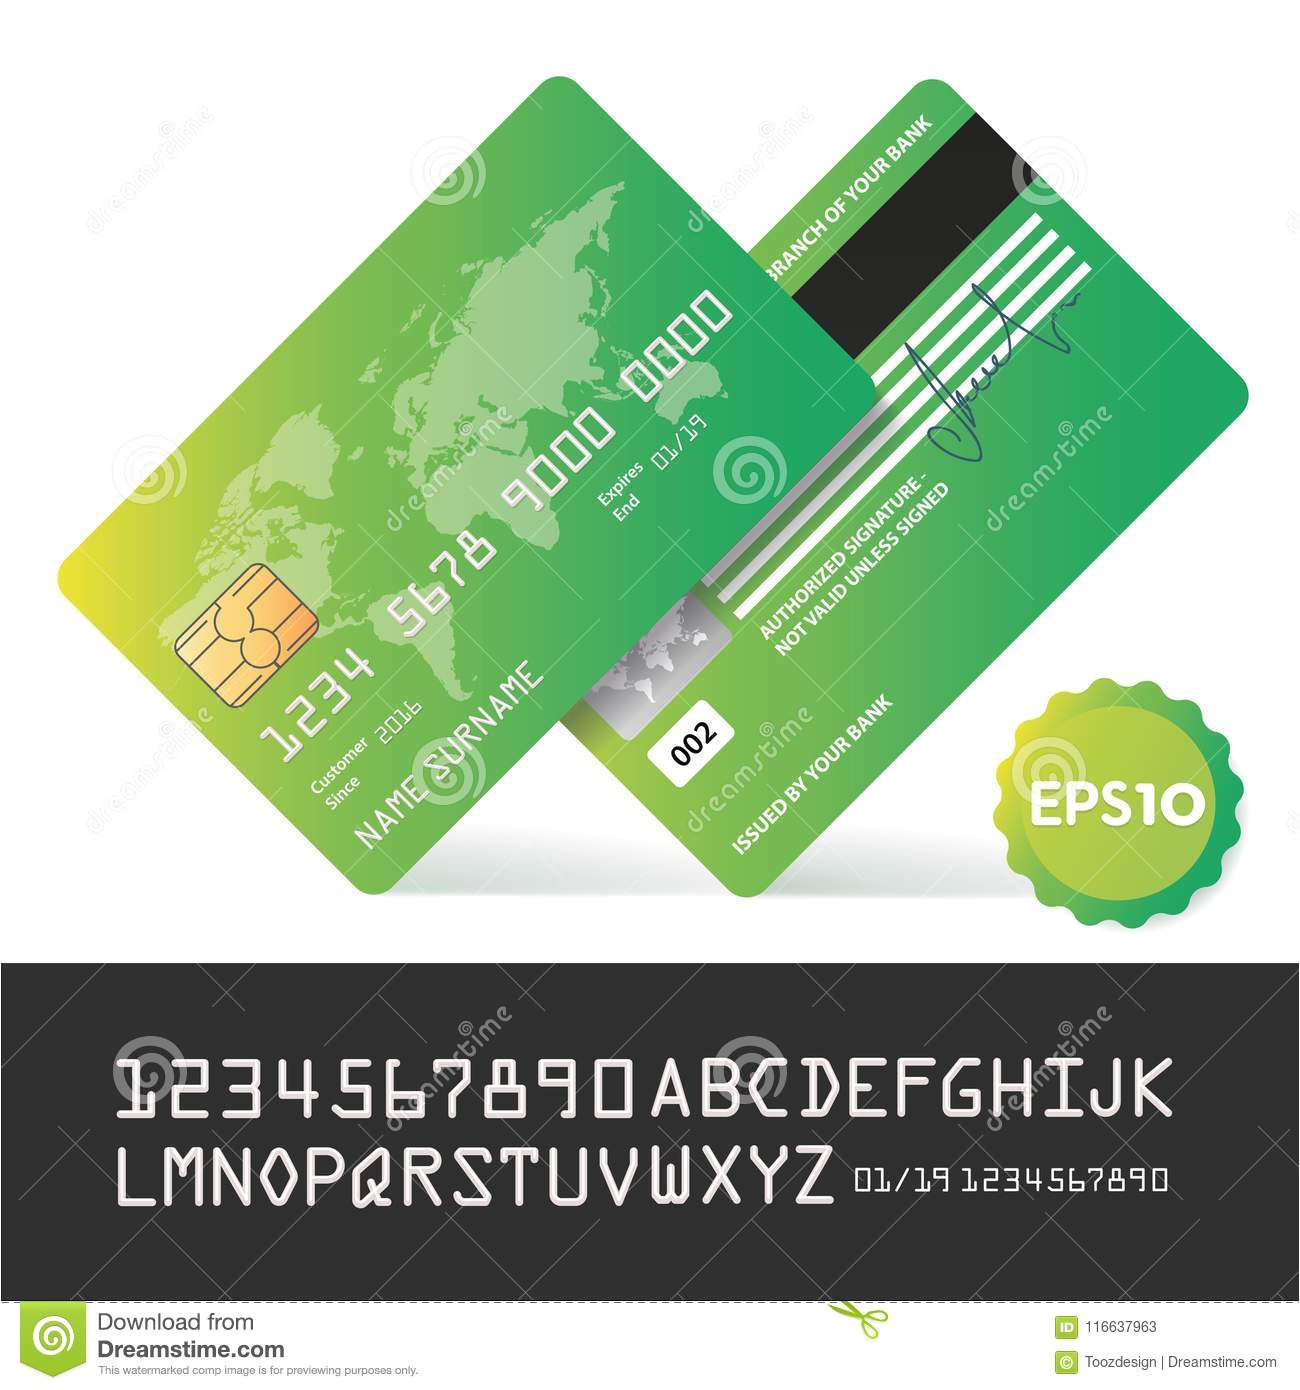 banking business plastic card payment credit banking business plastic card payment 116637963 jpg